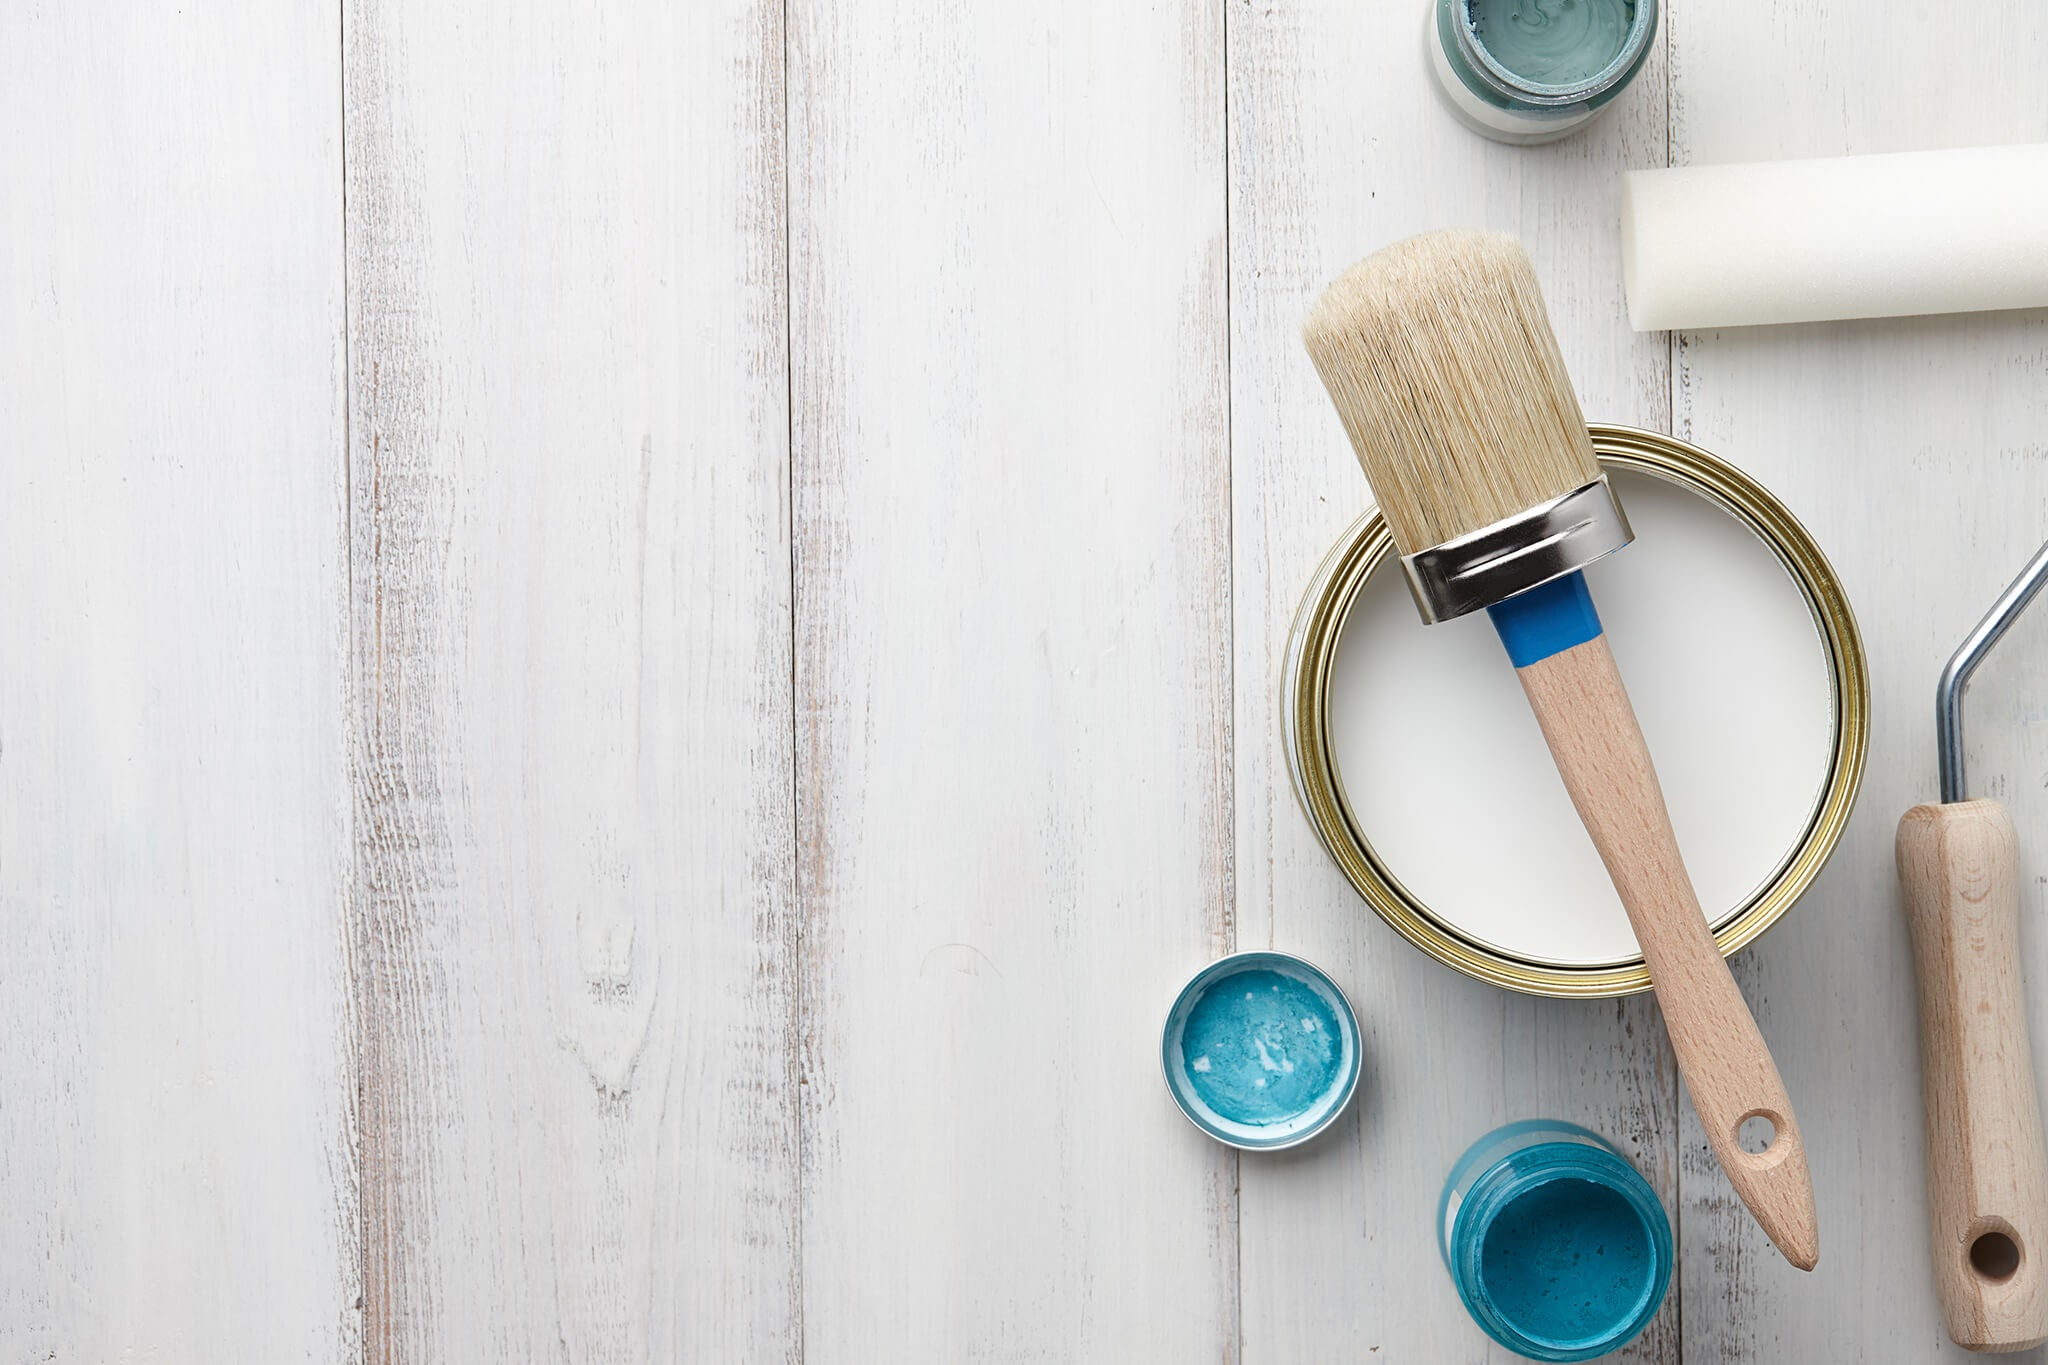 What are milk paint's benefits?